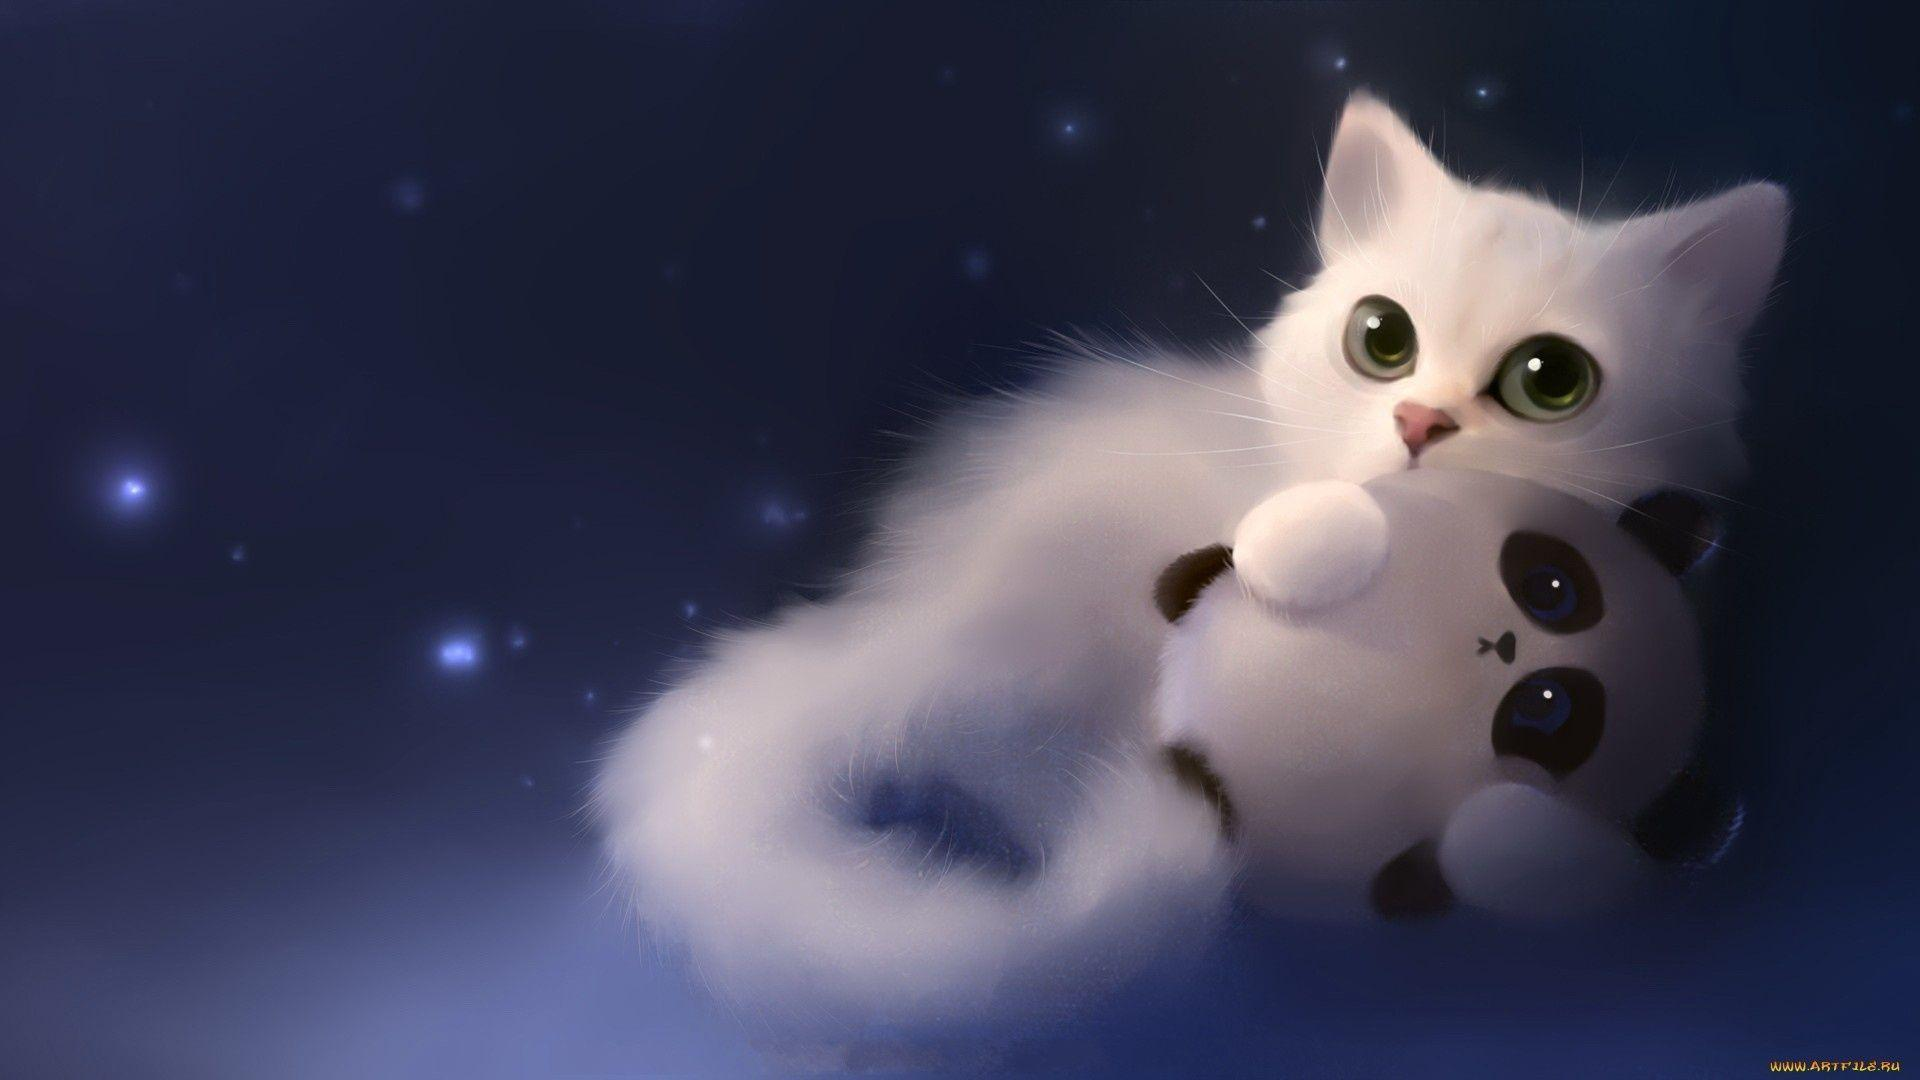 Cat Wallpapers 1 Wallpapers and Backgrounds